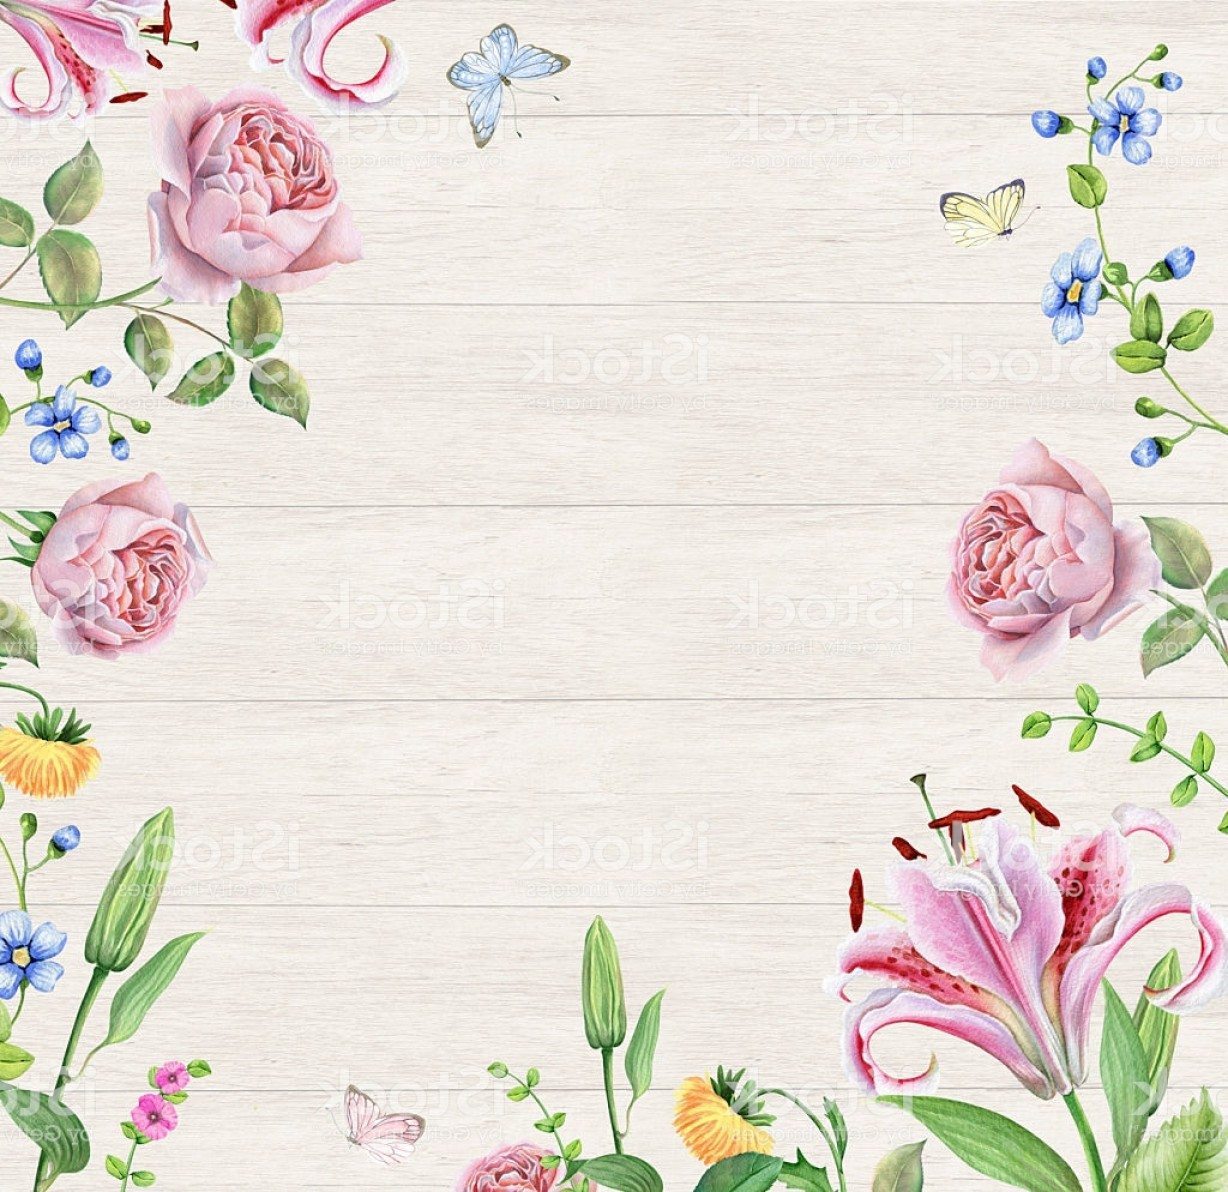 Watercolor Floral Background Vector: Frame With Watercolor Flowers On Wooden Background Gm